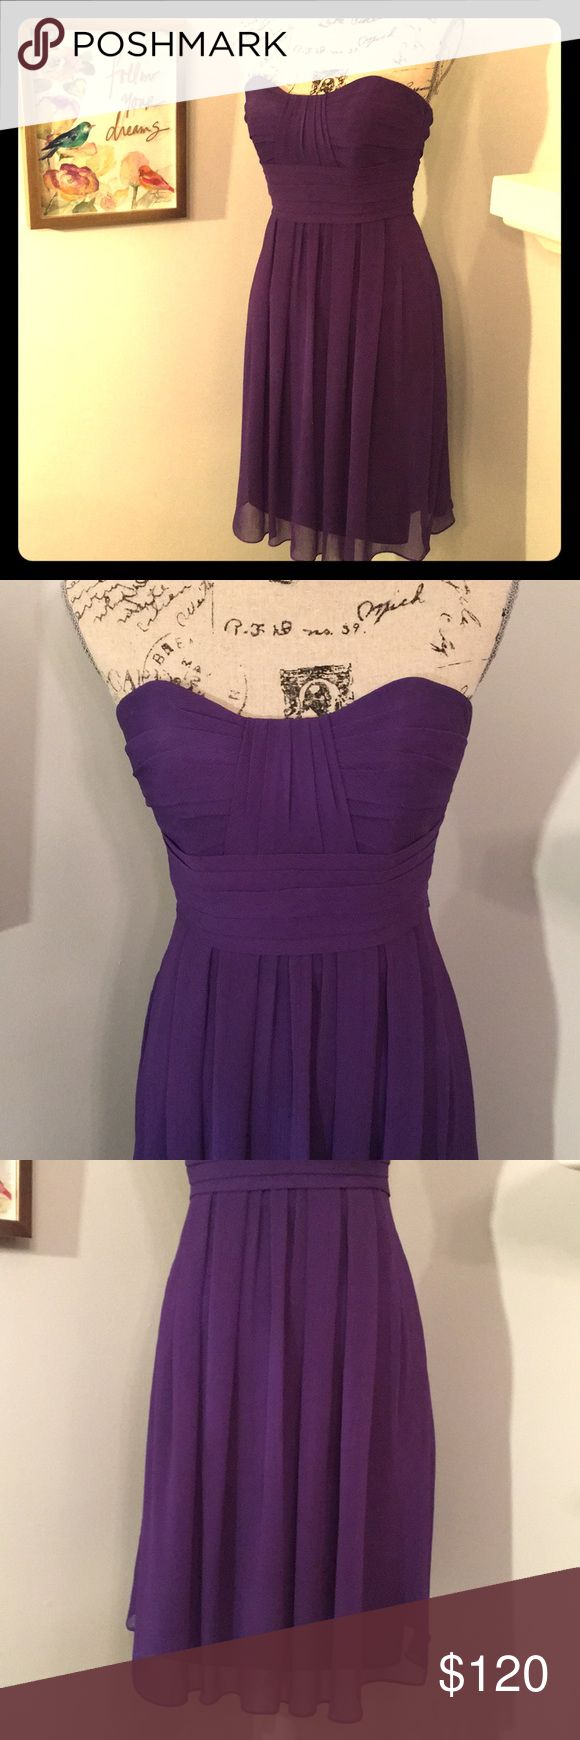 Priscilla of Boston Bridesmaid Dress Size 0 Beautiful and Flowing Bridesmaid dress by Priscilla of Boston is the prettiest royal purple color. It comes with removable spaghetti straps that snap in or out. It has a built in Bra/Rib strap to help keep your top in place if worn strapless.   This dress has been worn one in a wedding. It is very clean with no stains, tears or other issues. Looks and wears like new. It has been stored in a pet free, smoke free home.   Size 0 I am a 32B bra with a…